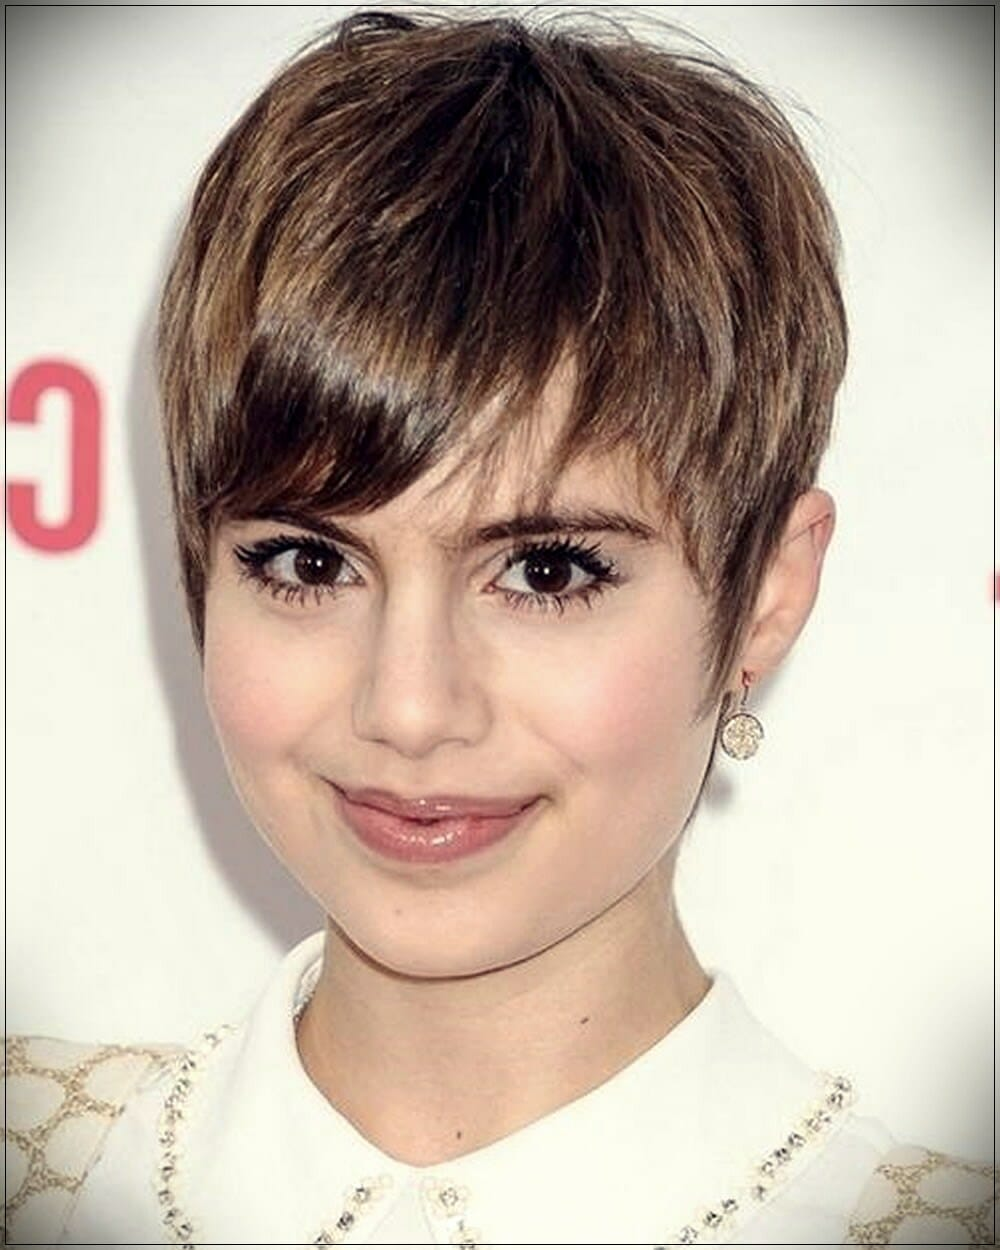 short hairstyles for round faces 11 - Correct hairstyles for your face type